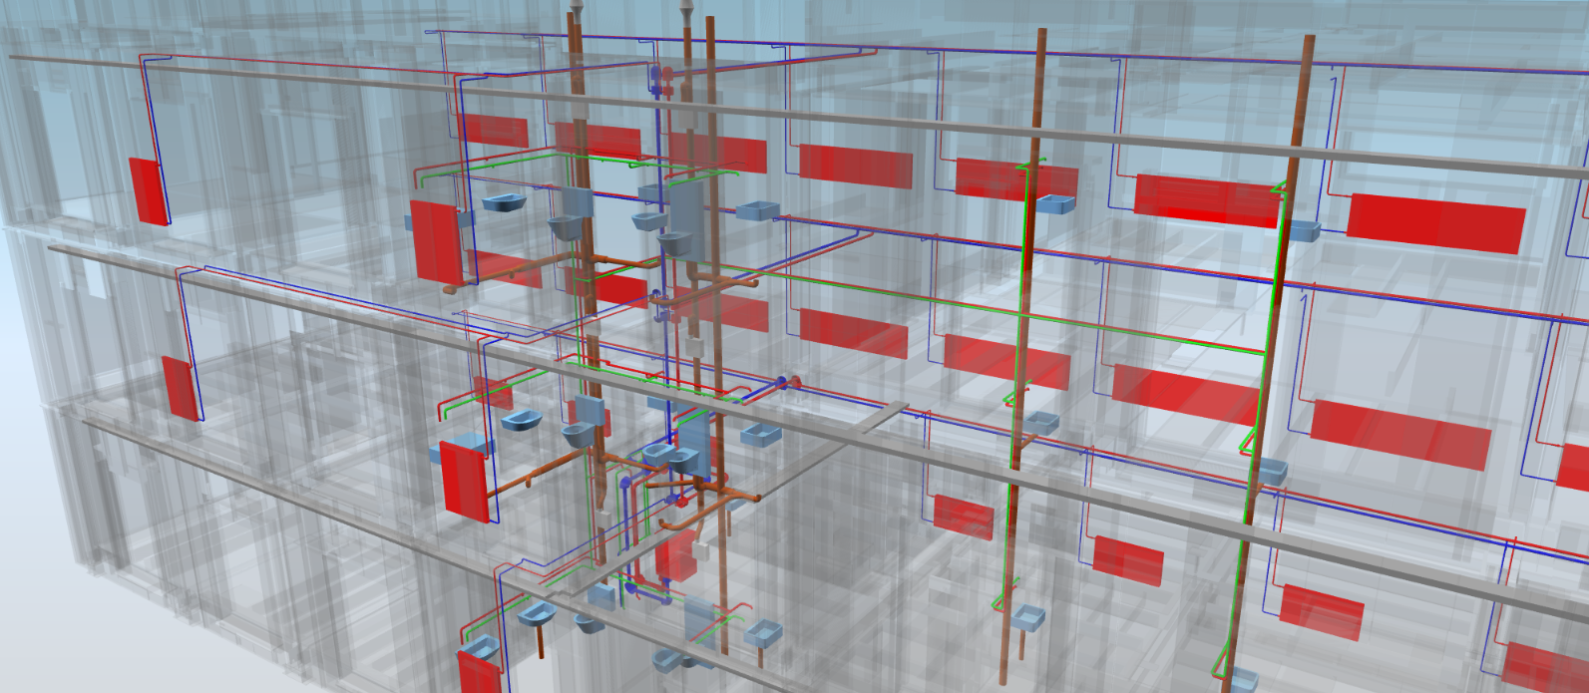 3D BIM planning model of the Lattich modular construction